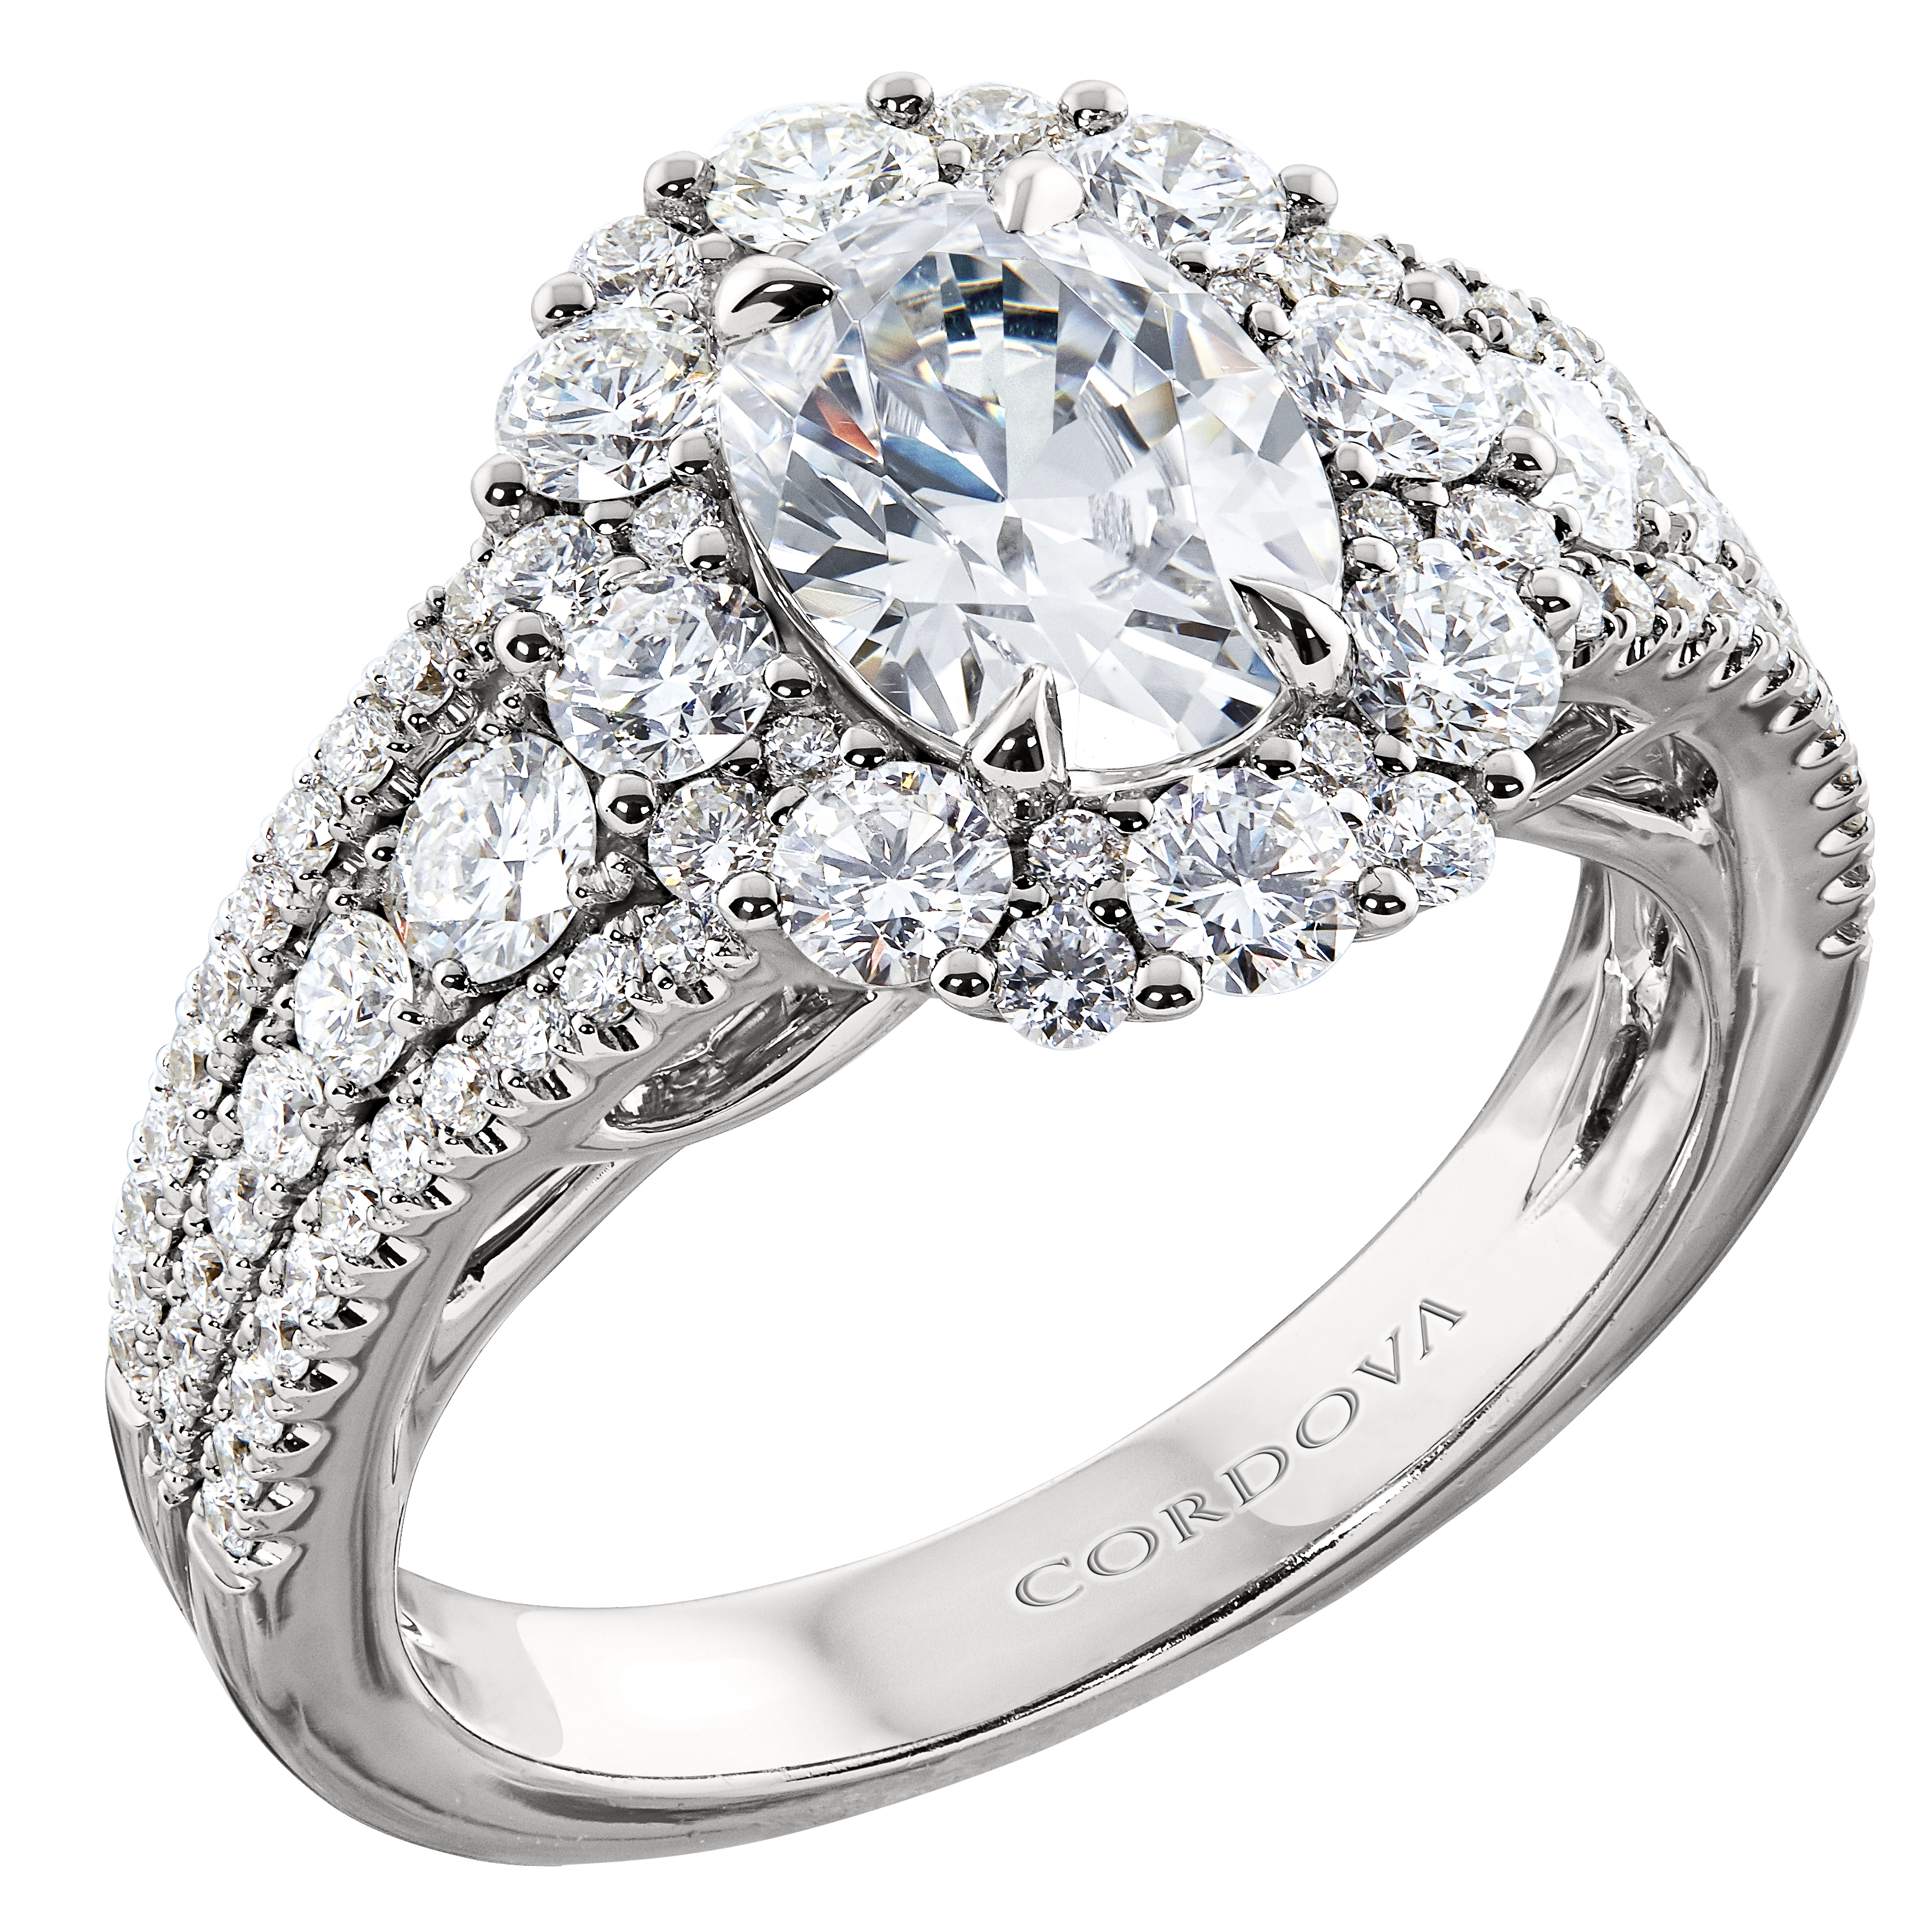 Cordova Celestial collection engagement ring | JCK On Your Market